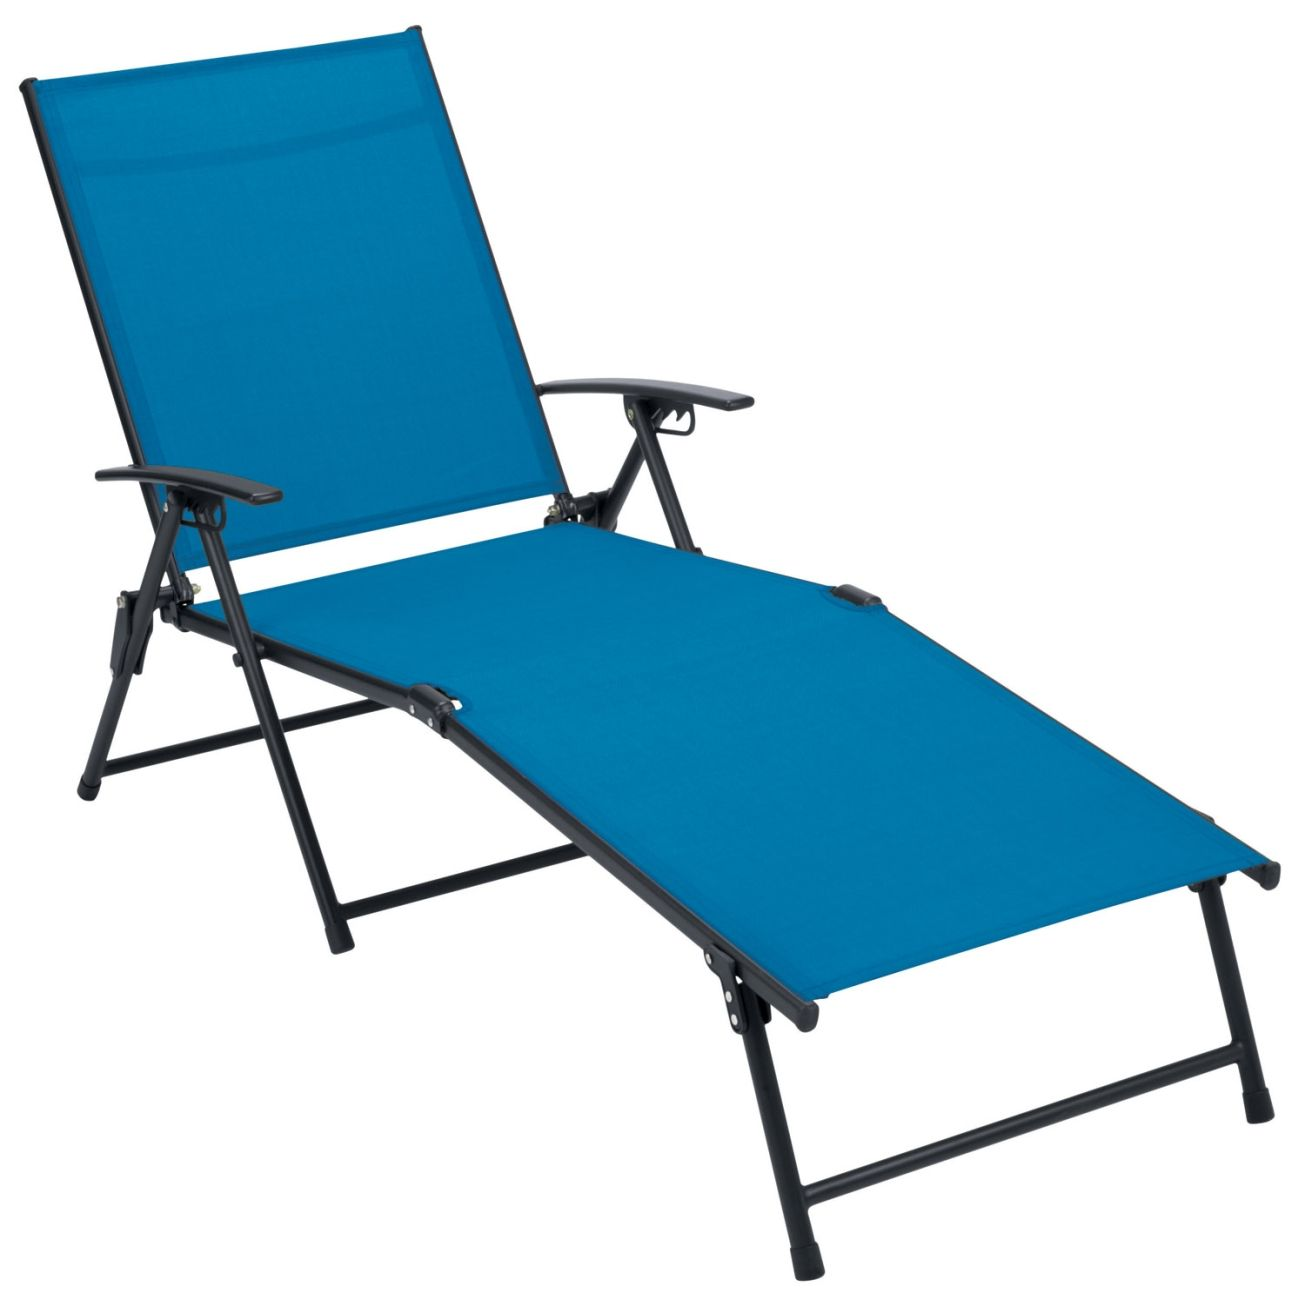 Stupendous Living Accents Blue Folding Sling Chaise Lounge Lounge Inzonedesignstudio Interior Chair Design Inzonedesignstudiocom